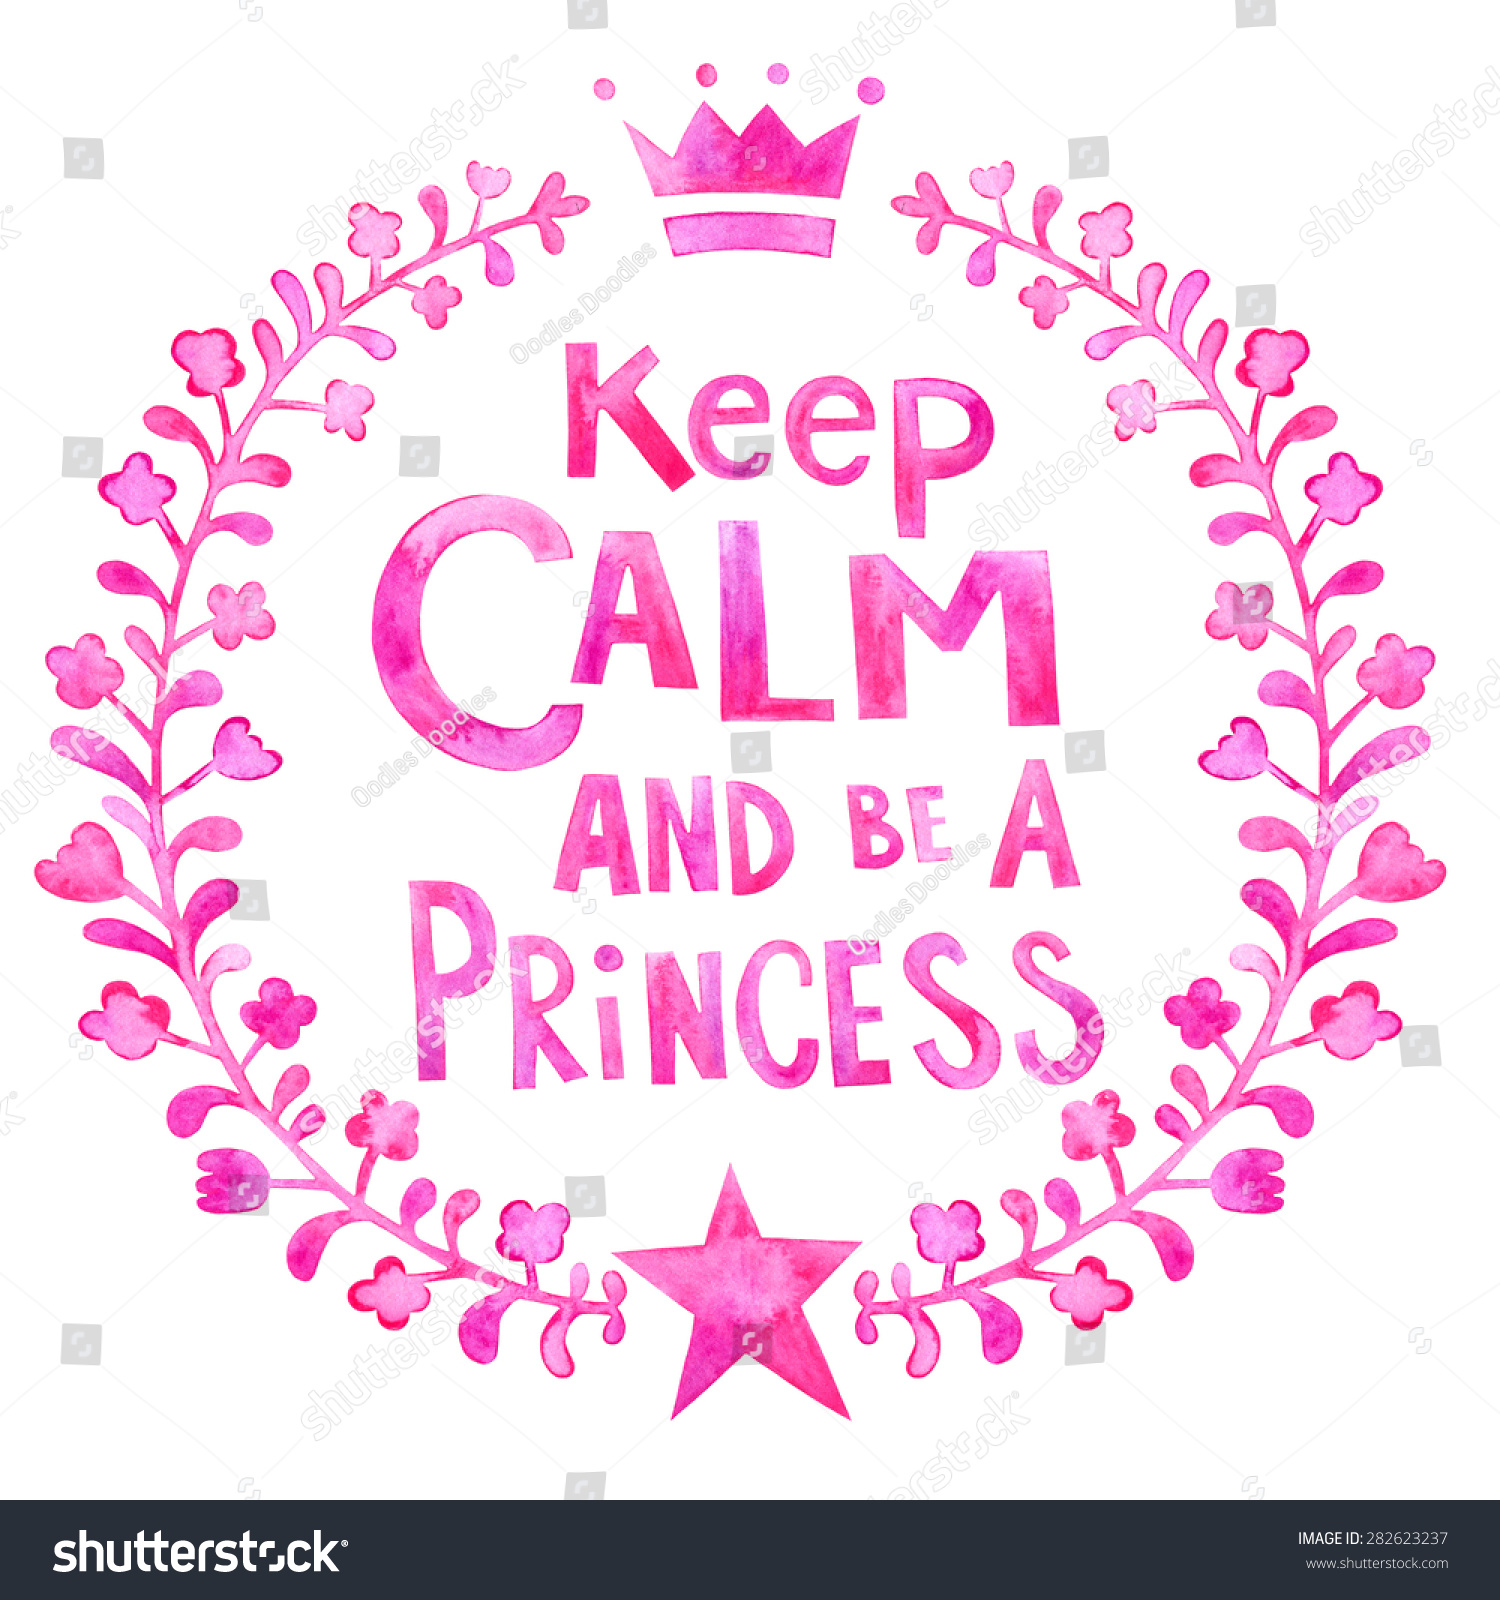 KEEP CALM AND BE A PRINCESS lettering. Keep calm and be a princess  watercolor poster 92c88a42ae5